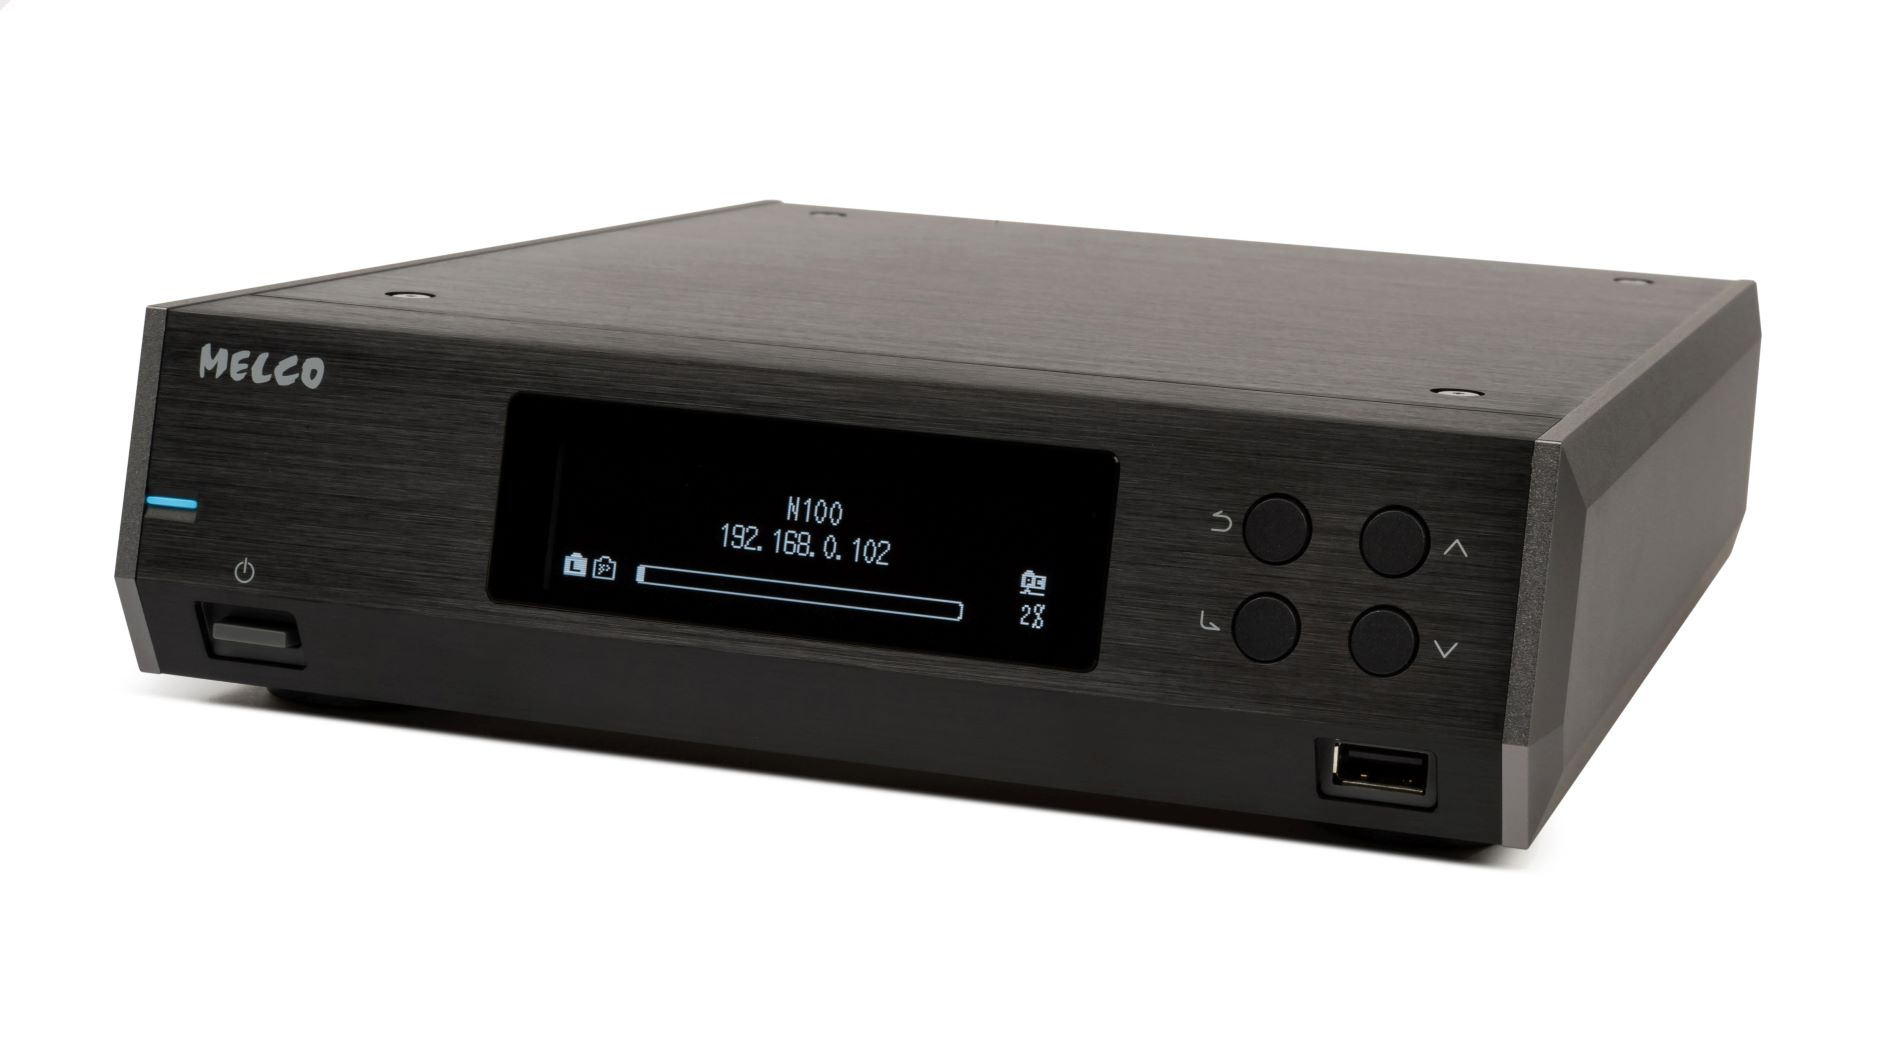 Melco black units and software debut in UK - Powerful new music search and metadata tool, Melco Intelligent Music Library, PLUS the new black-finish compact-chassis digital music libraries, revealed for the first time in the UK at the North West Audio Show 2019